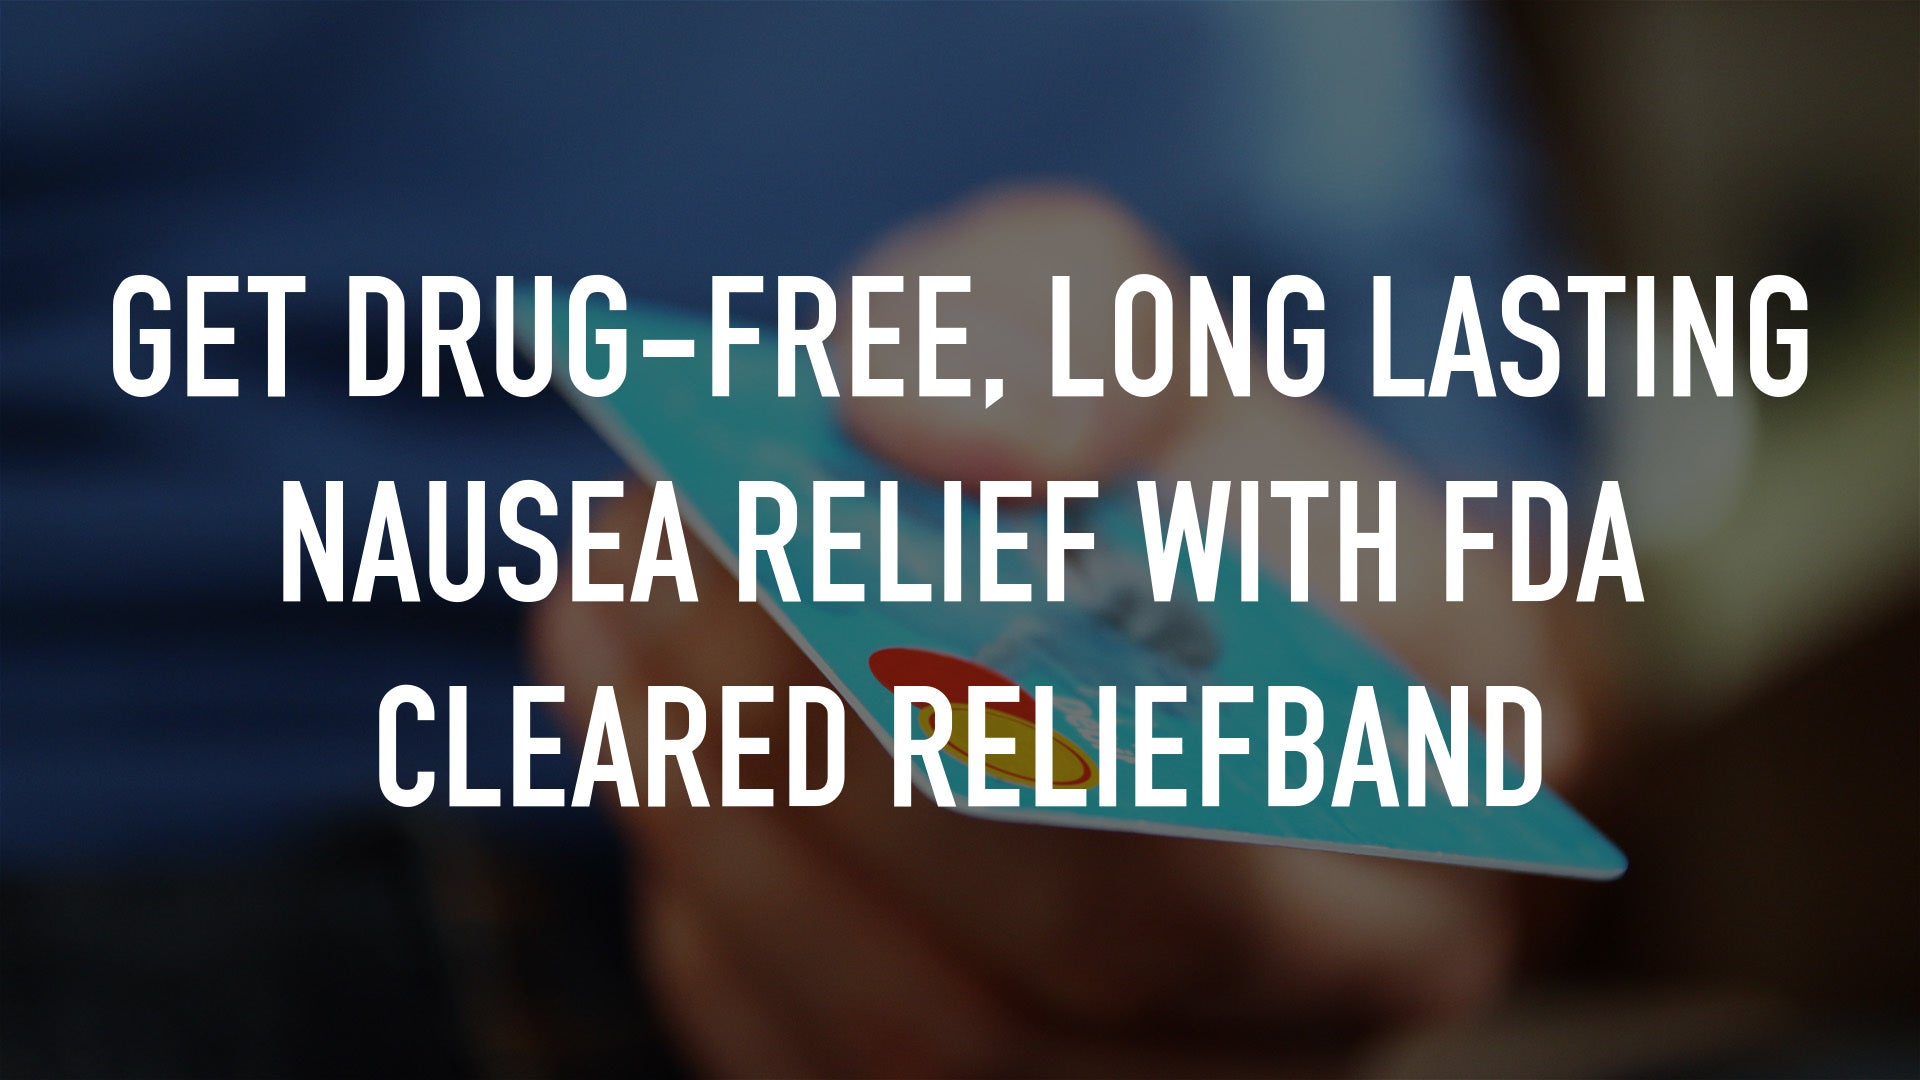 Get Drug-Free, Long Lasting Nausea Relief with FDA Cleared ReliefBand